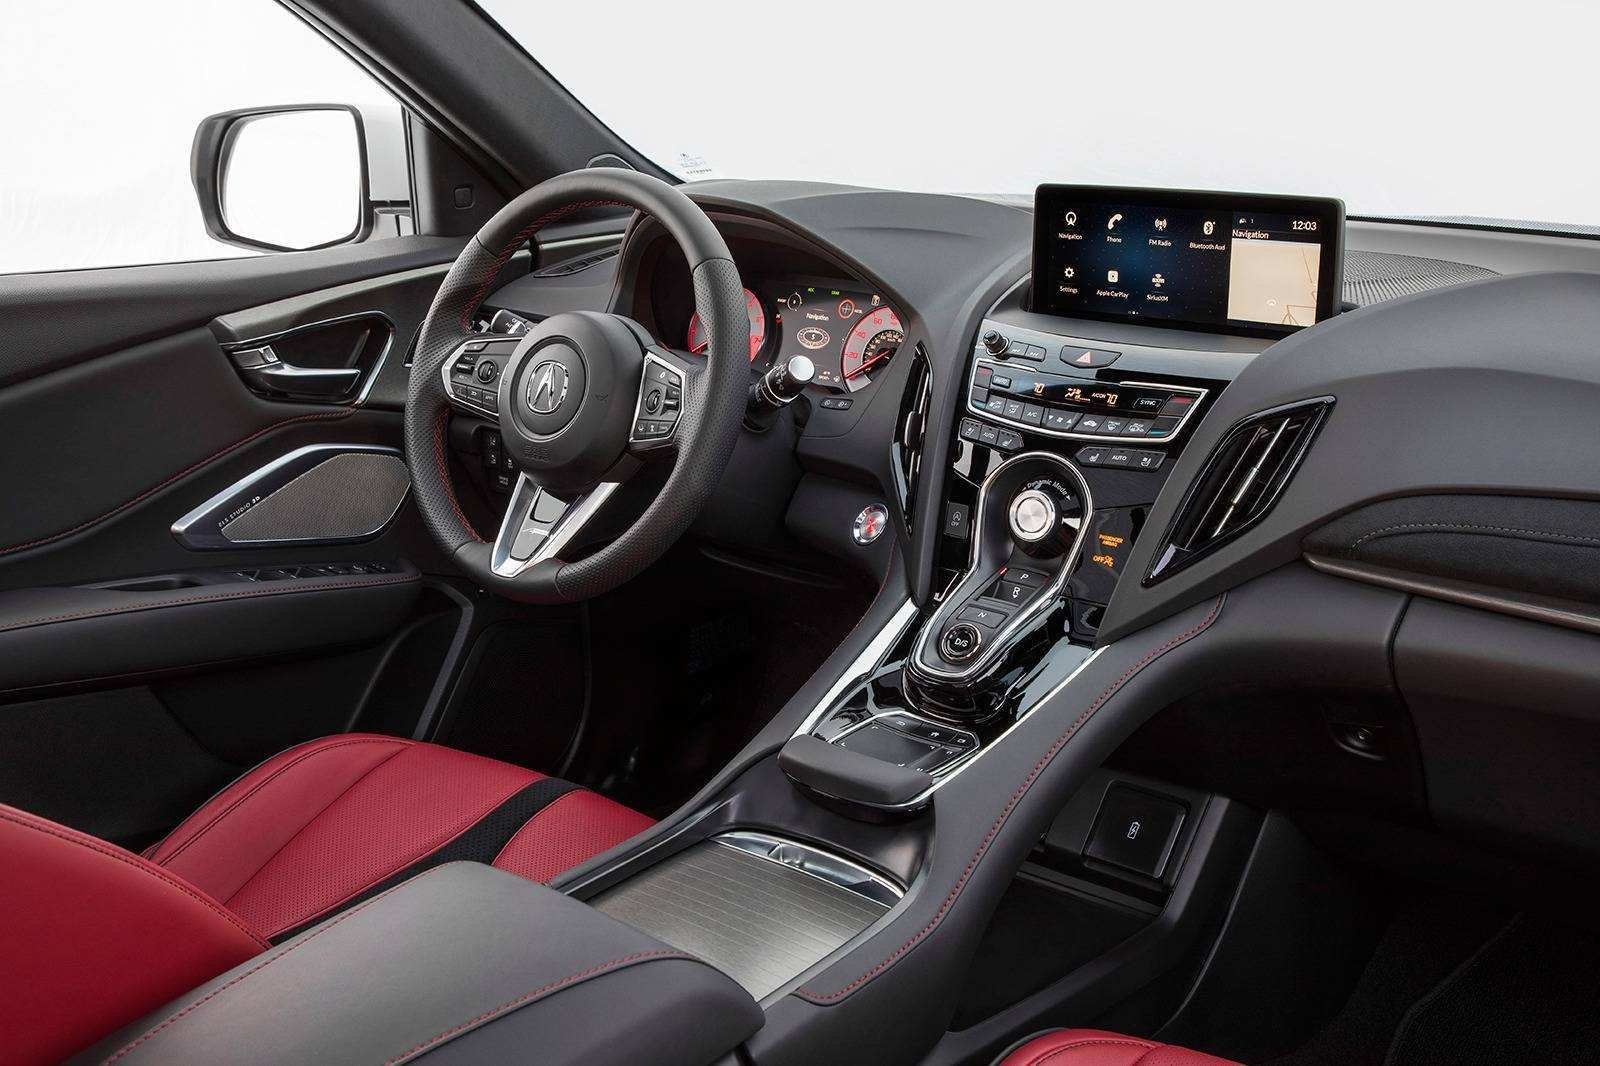 54 Great The 2019 Acura Rdx Edmunds Review And Price Photos with The 2019 Acura Rdx Edmunds Review And Price